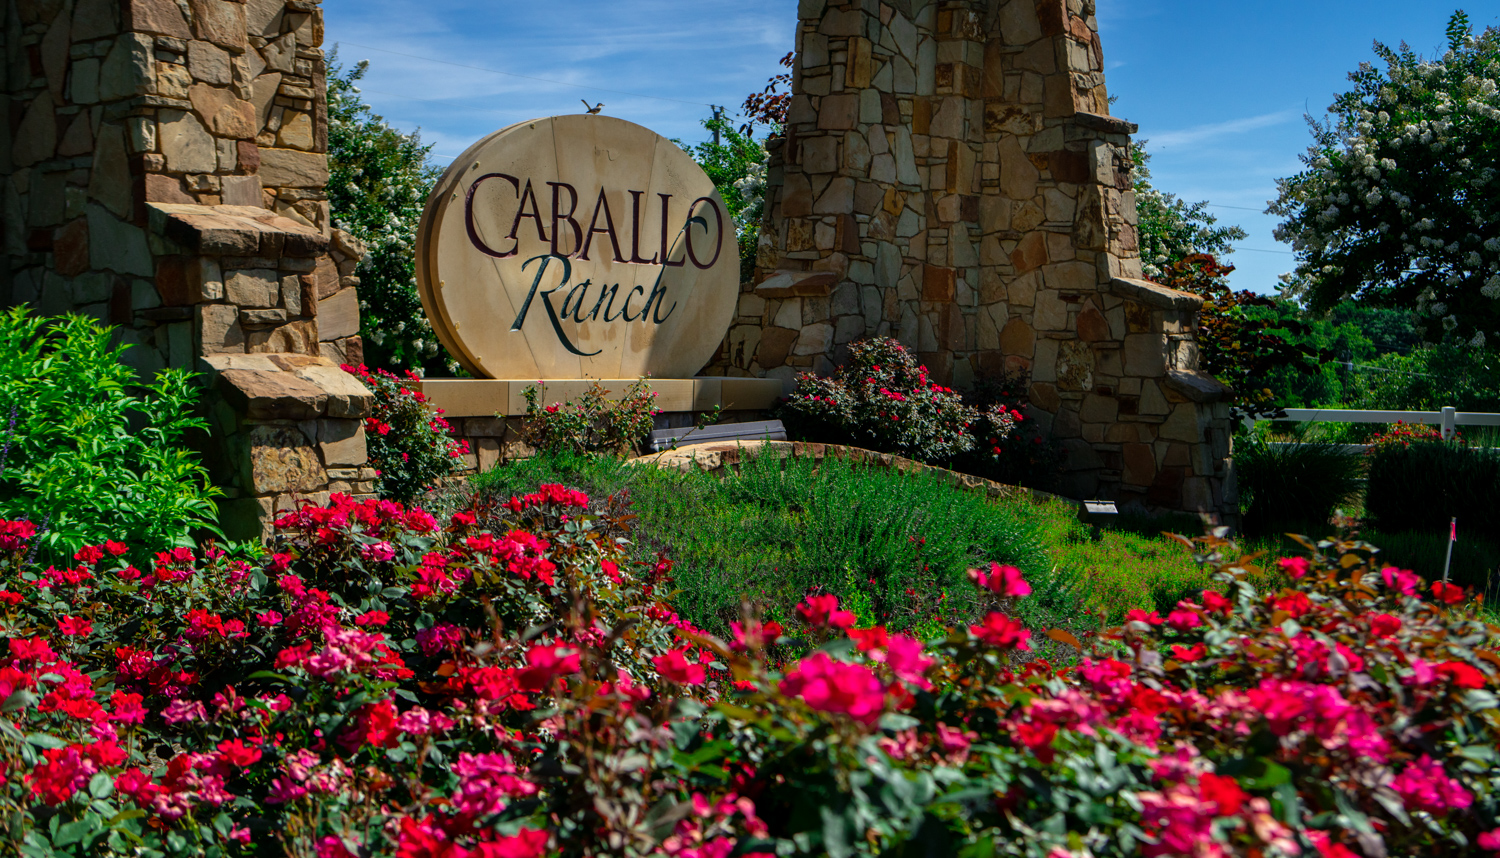 commercial-landscaping-CaballoRanch-flowers-planting-sign-2